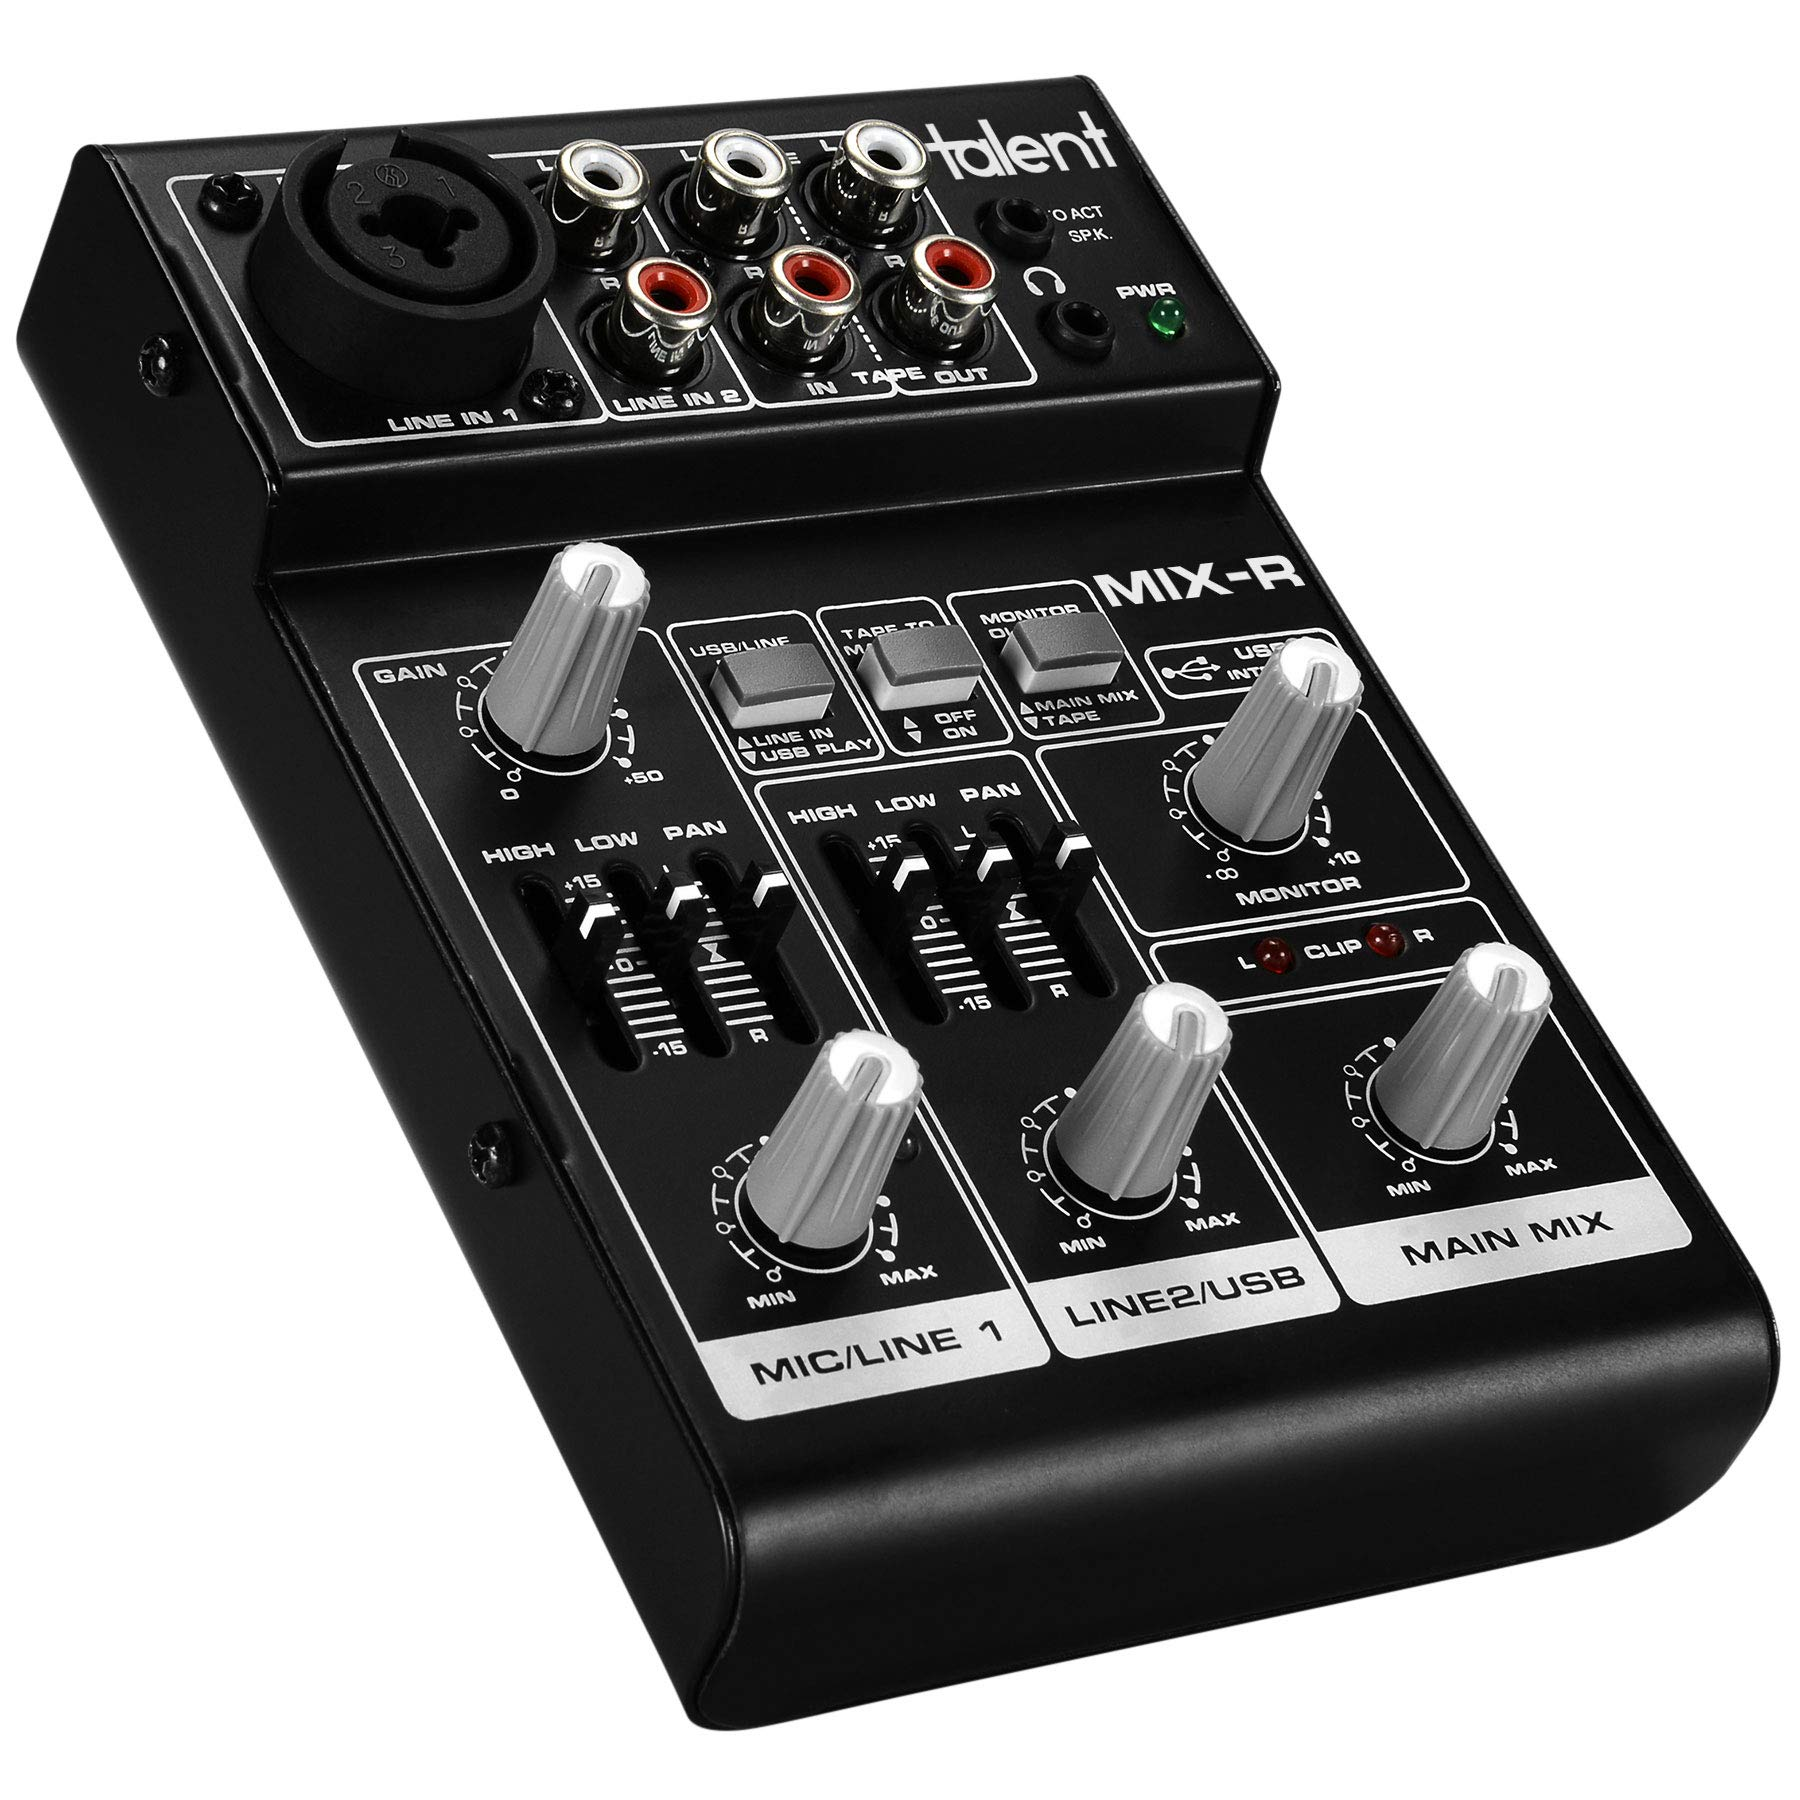 Talent Mix-R 3-Channel 4-Input 2-Bus Compact Portable Stereo Mini Mixer with USB Audio Interface & +20V Phantom Power by Talent Sound & Lighting